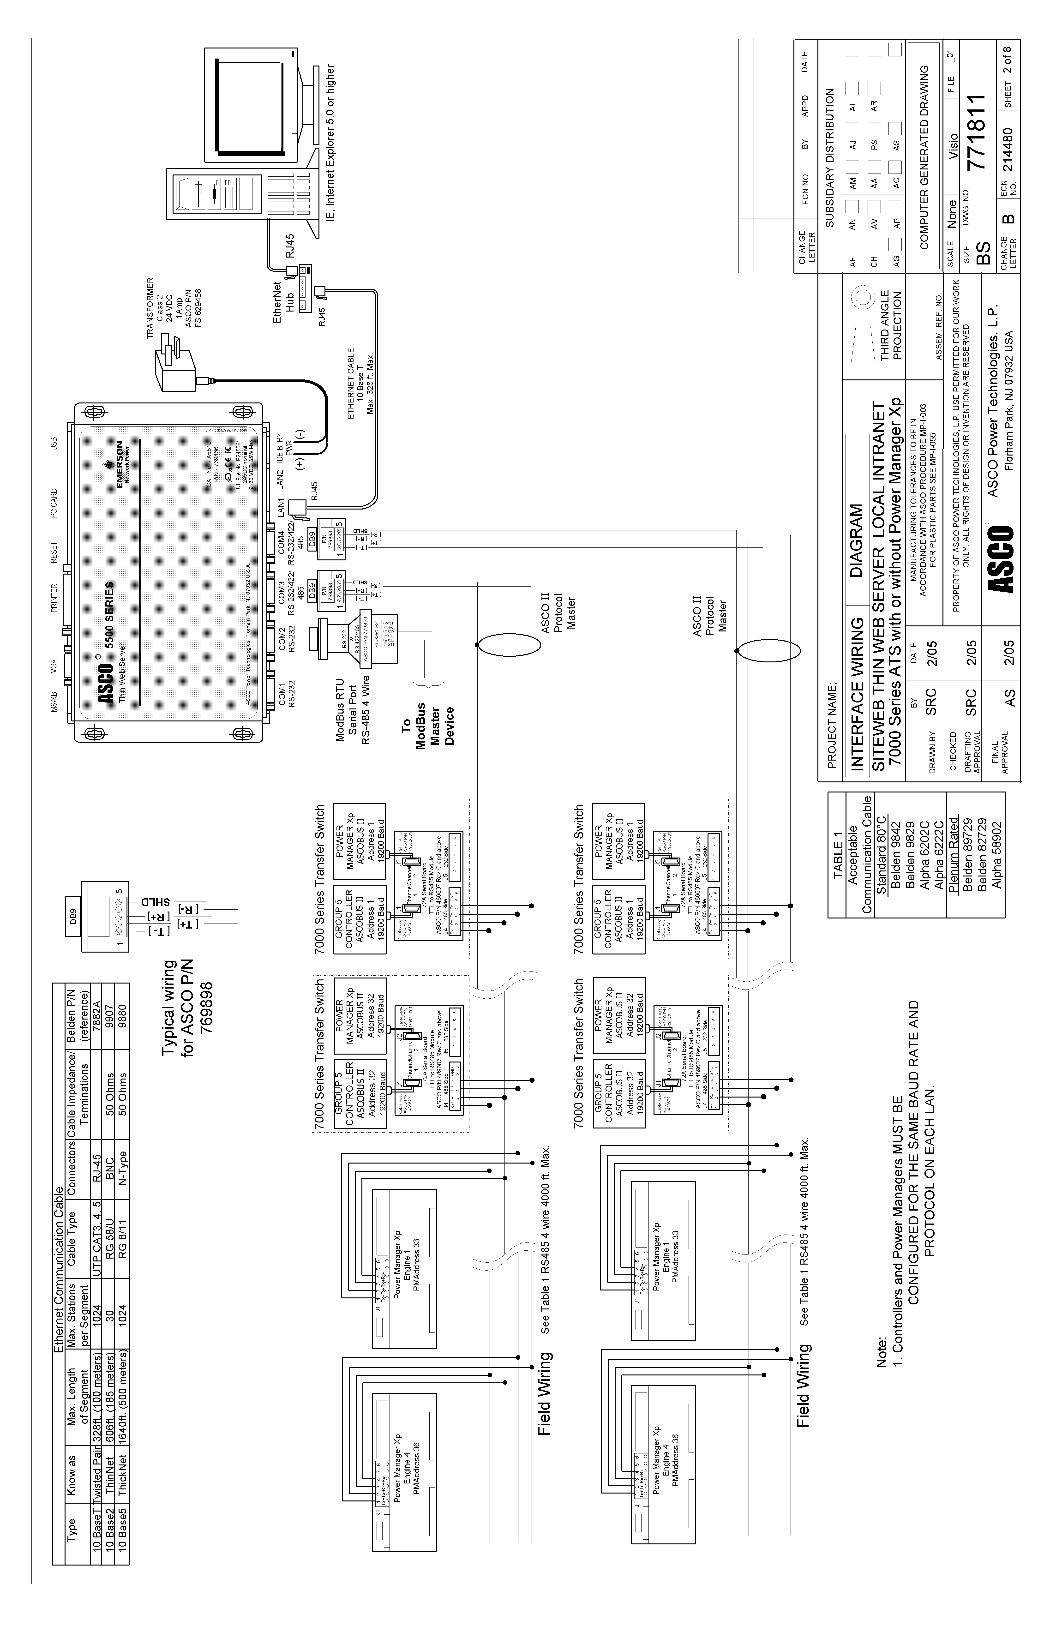 1998 Nissan Altima Wiring Diagram Collection